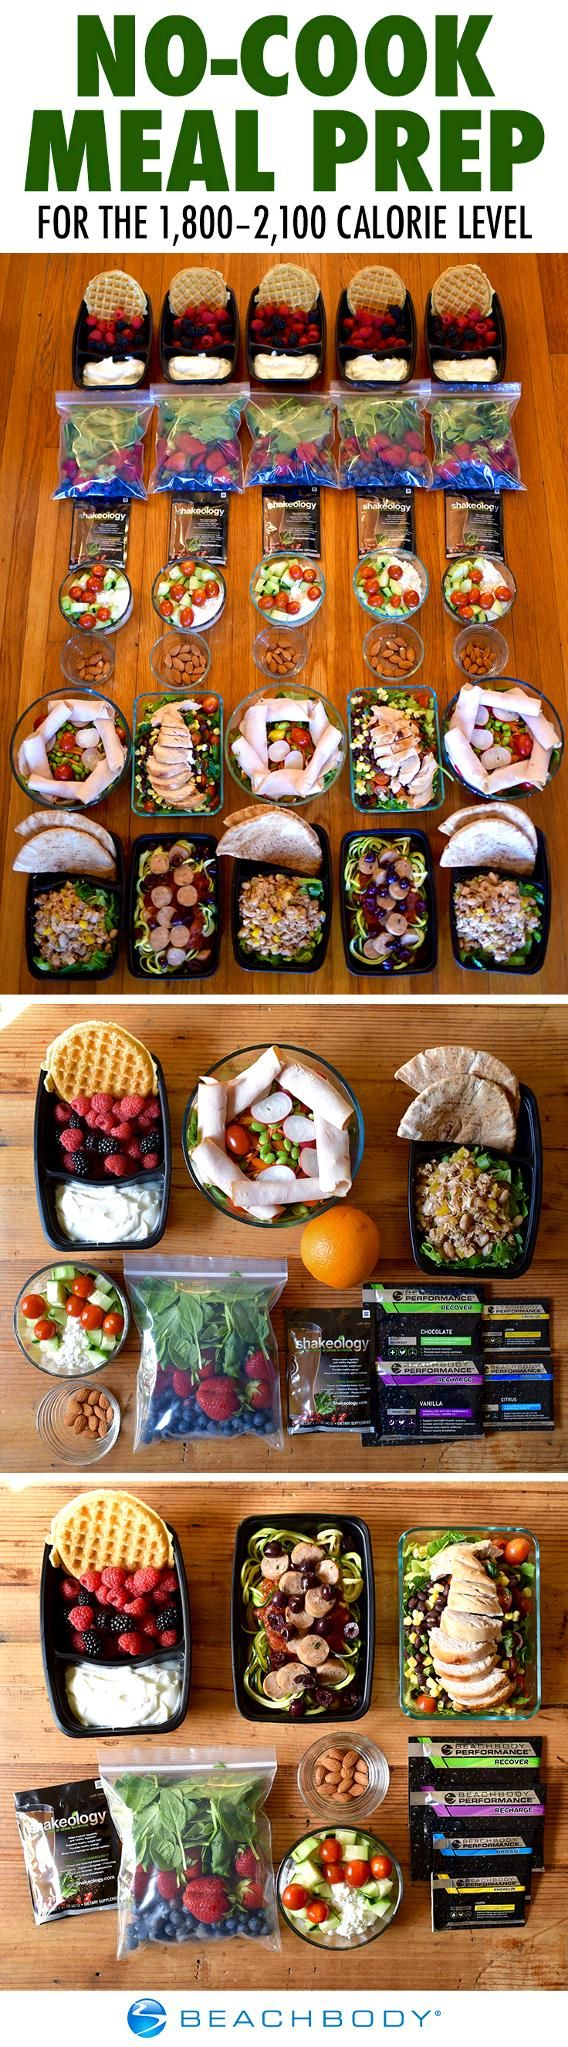 Everyone should be able to meal prep, no matter how your skills are in the kitchen or how much time you have on the weekend. This no-cook meal prep plan is fast, easy, and doesn't require you to cook a single thing! // Beachbody // BeachbodyBlog.com